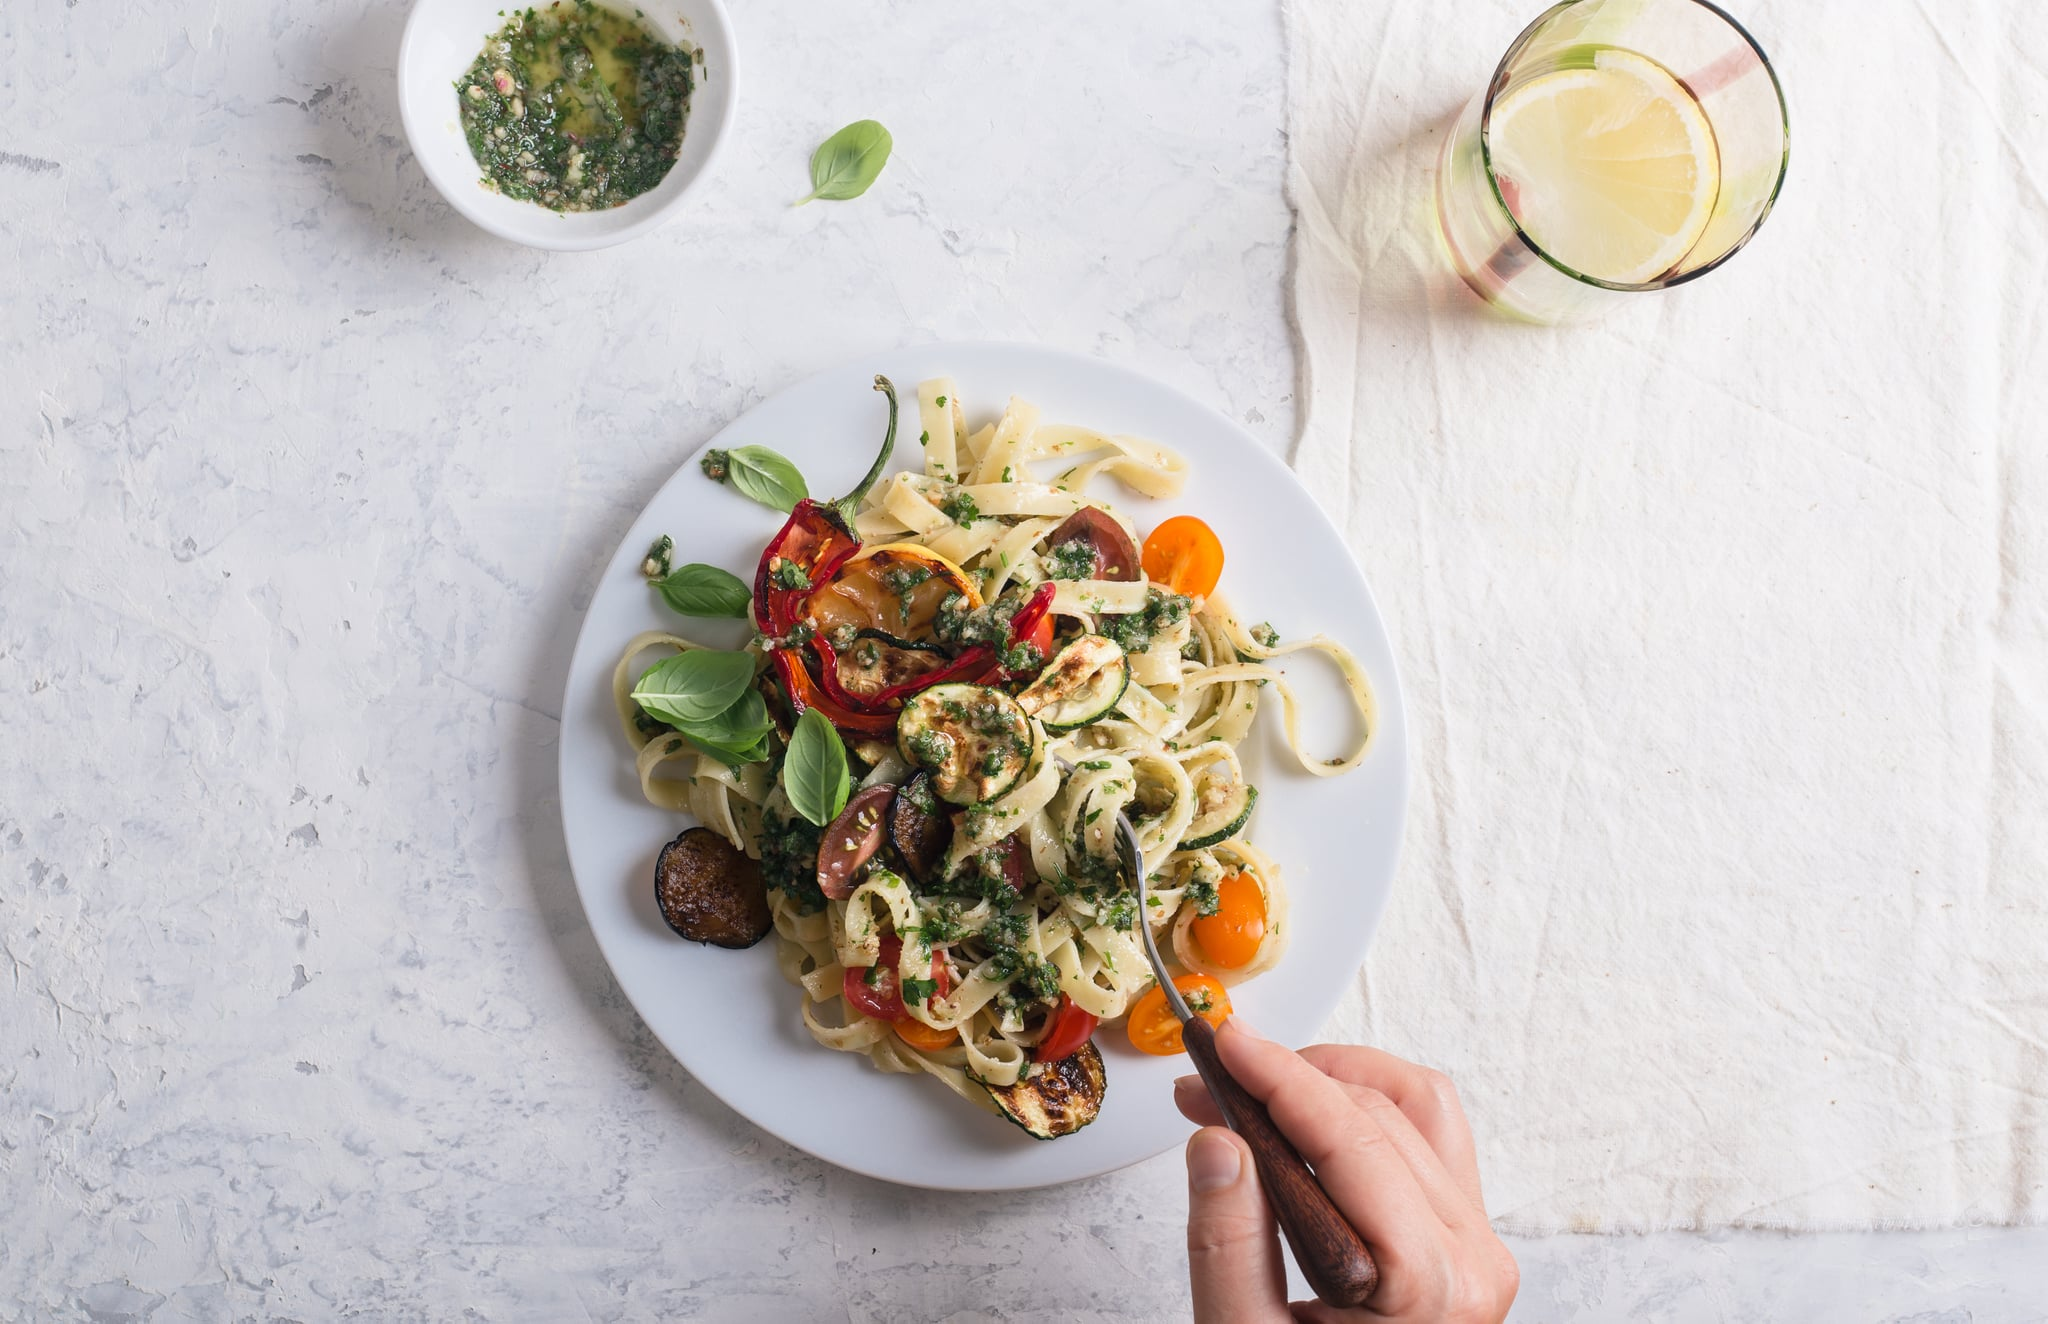 Eating Fettucine with roasted summer colorful vegetables and parsley walnut pesto, delicious vegan meal served with  fresh lemon water on rural table, top view